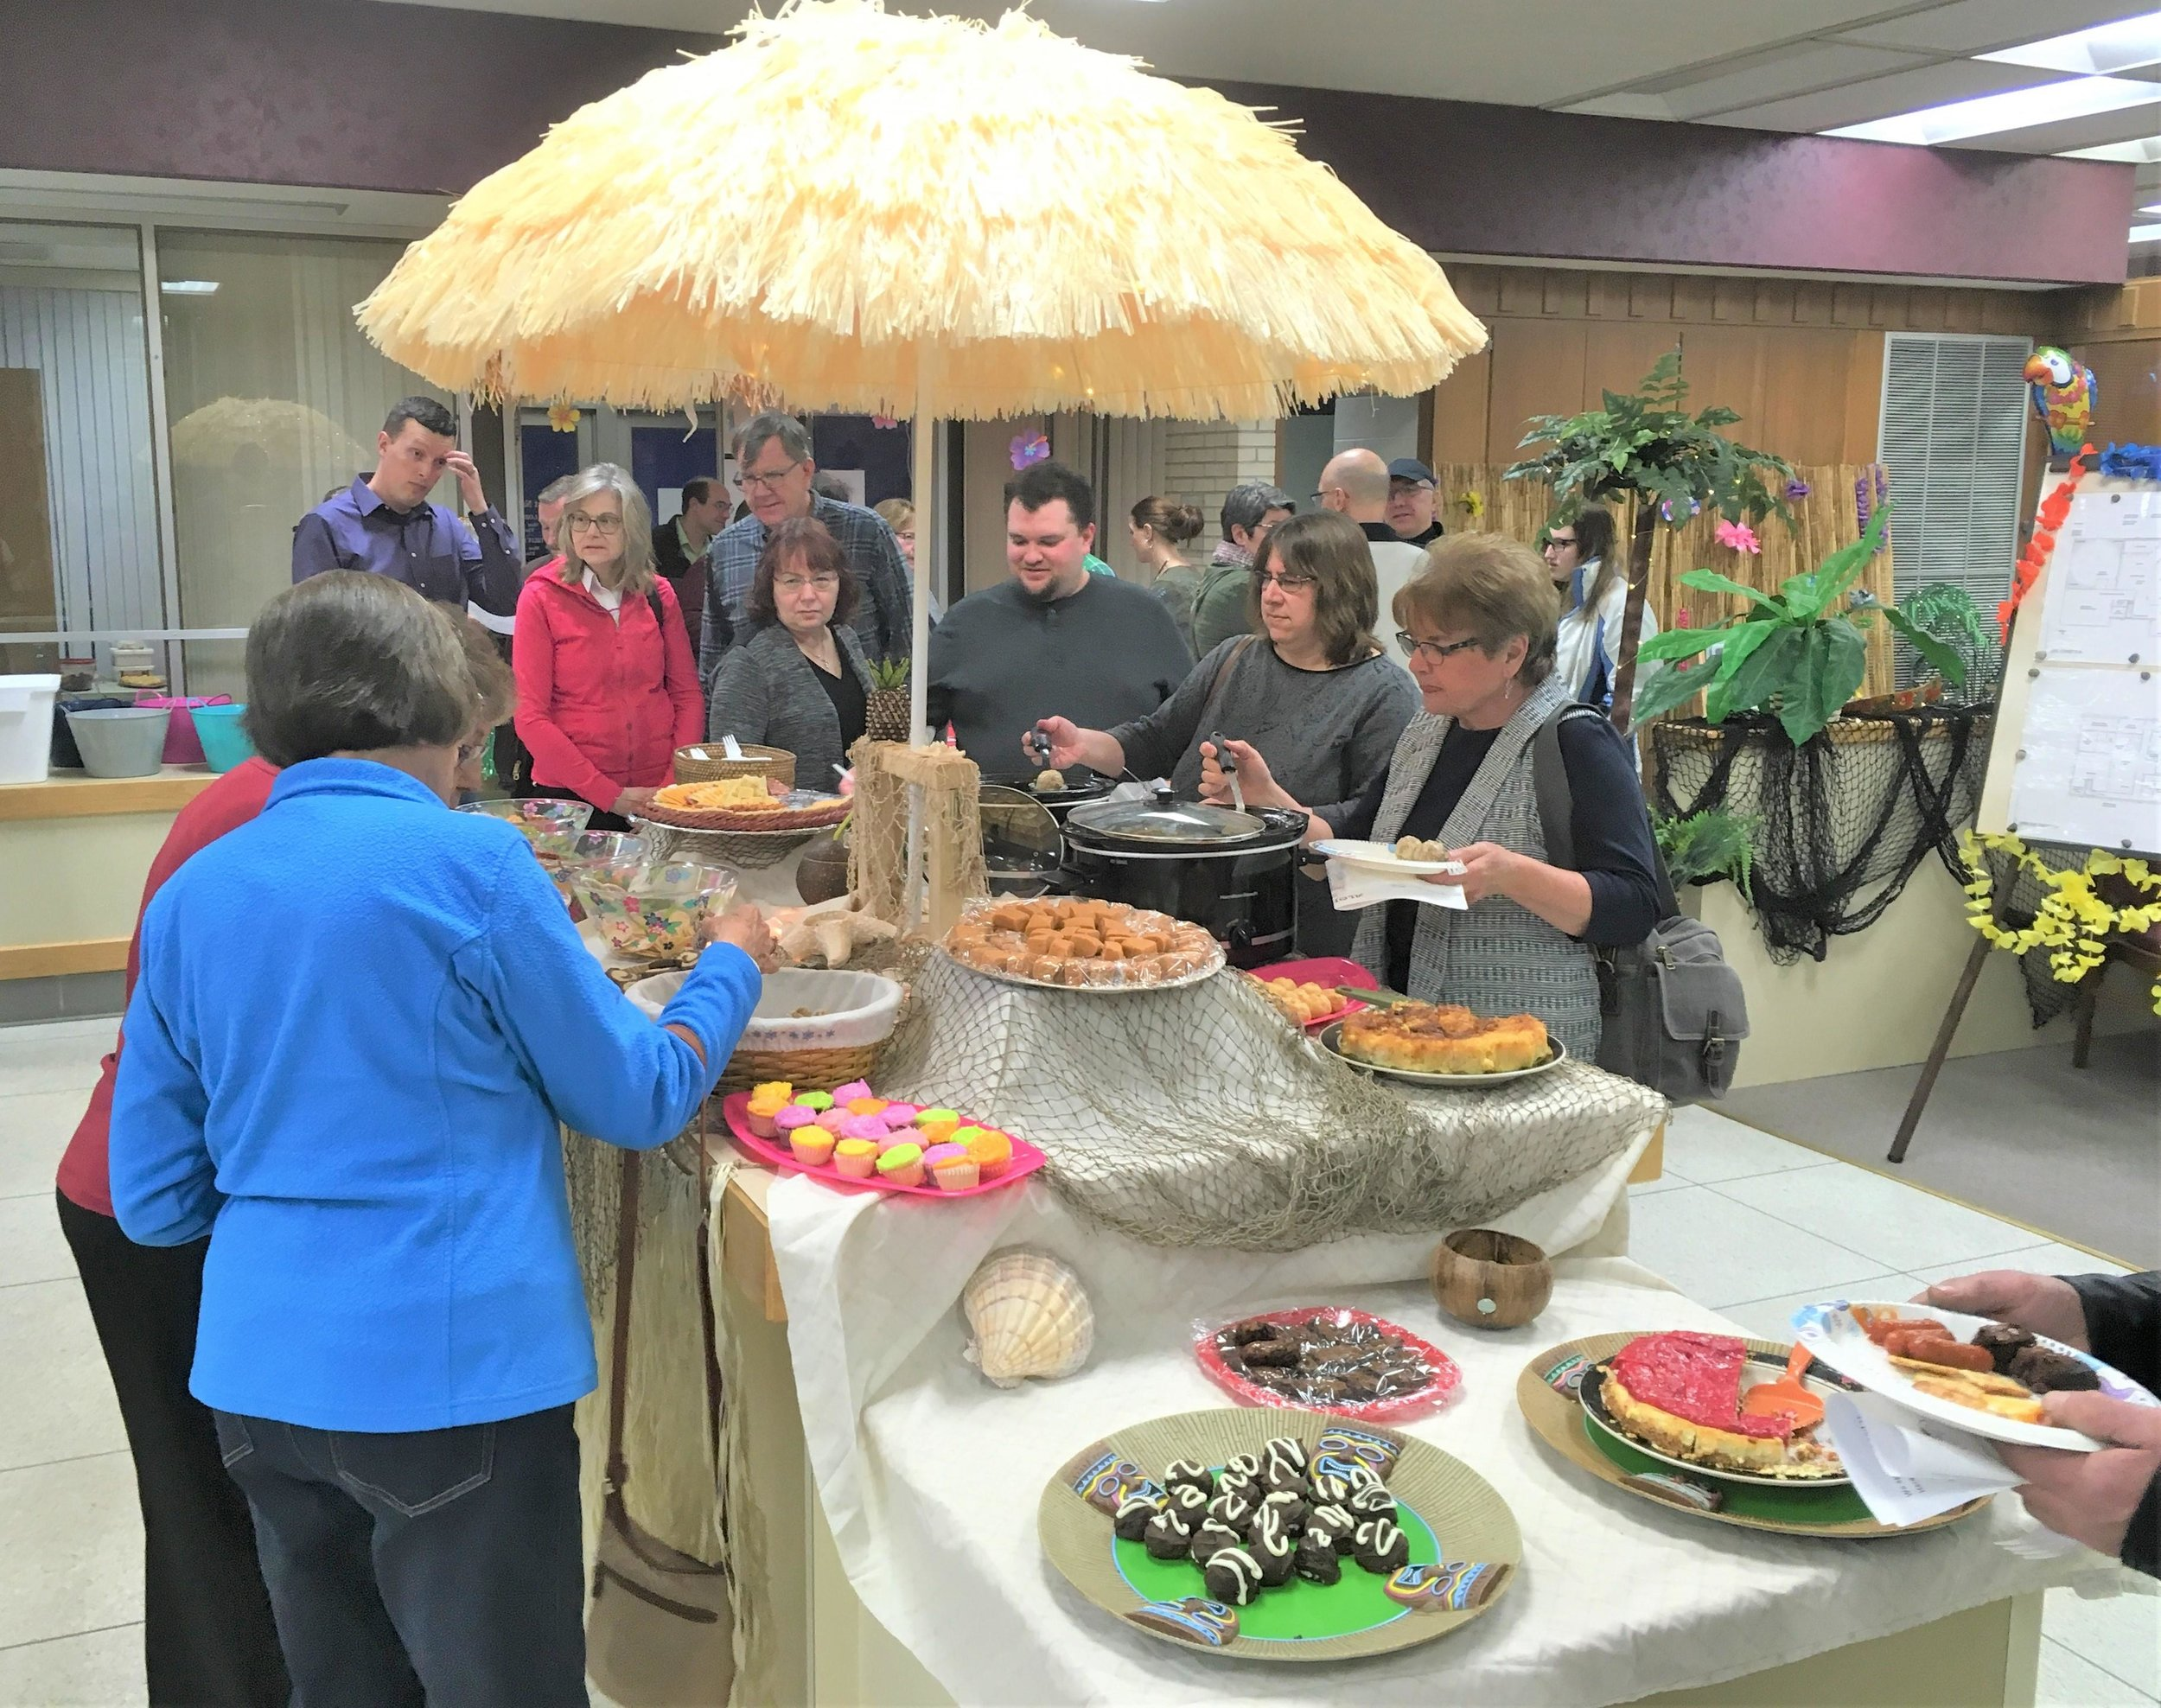 Under the shade of a grass umbrella, library fundraiser attendees indulged on meats, cheese, and confectionery delights Saturday at the former First National Bank building in Wadena. Michael Johnson/Pioneer Journal